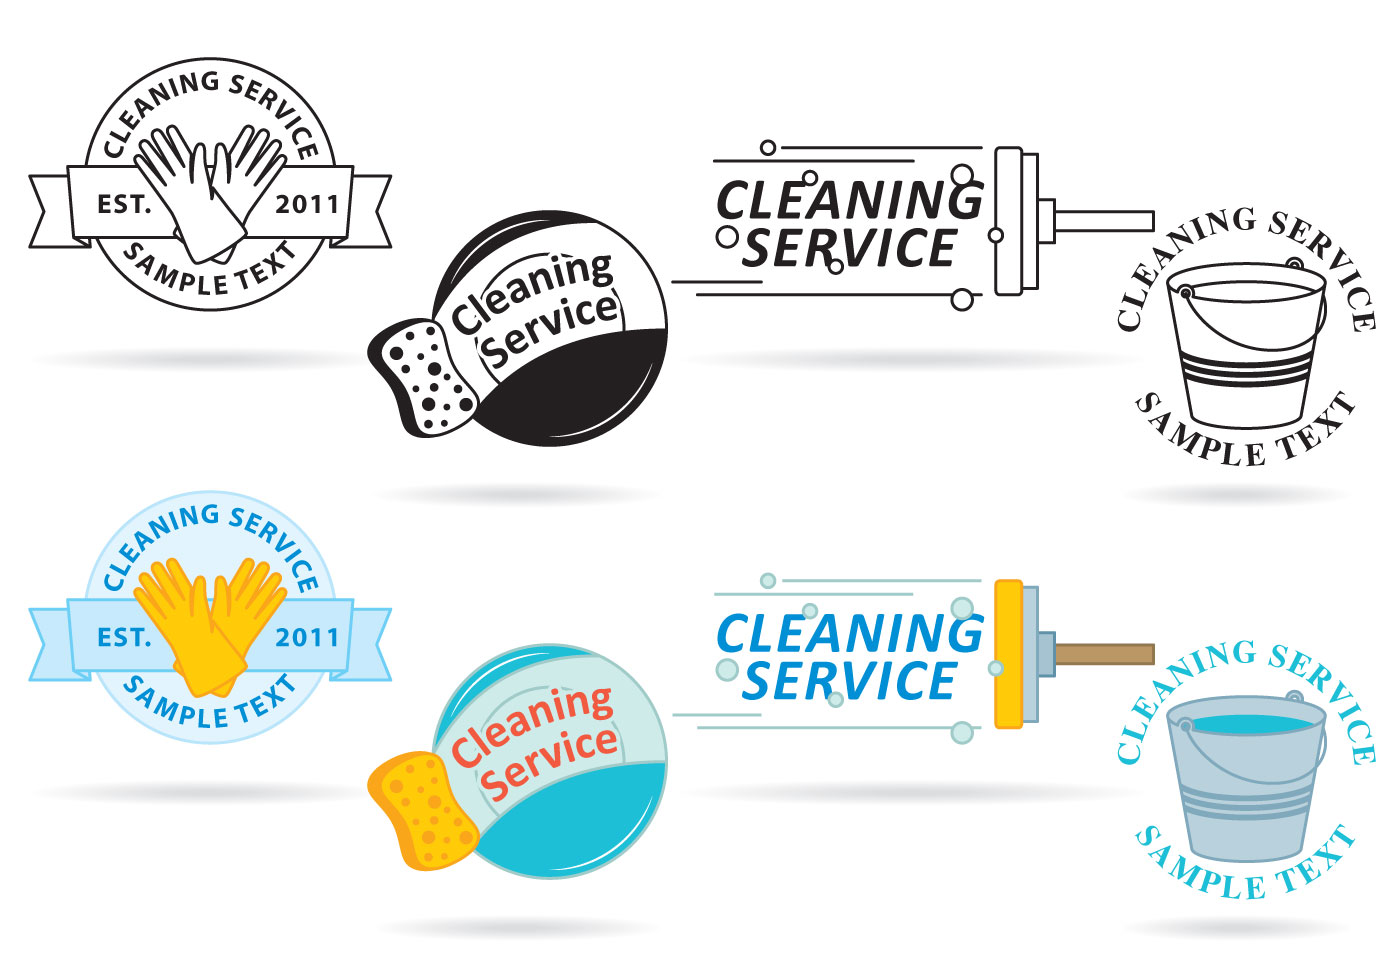 Cleaning Service Logo Vectors Download Free Vector Art Stock Graphics amp Images